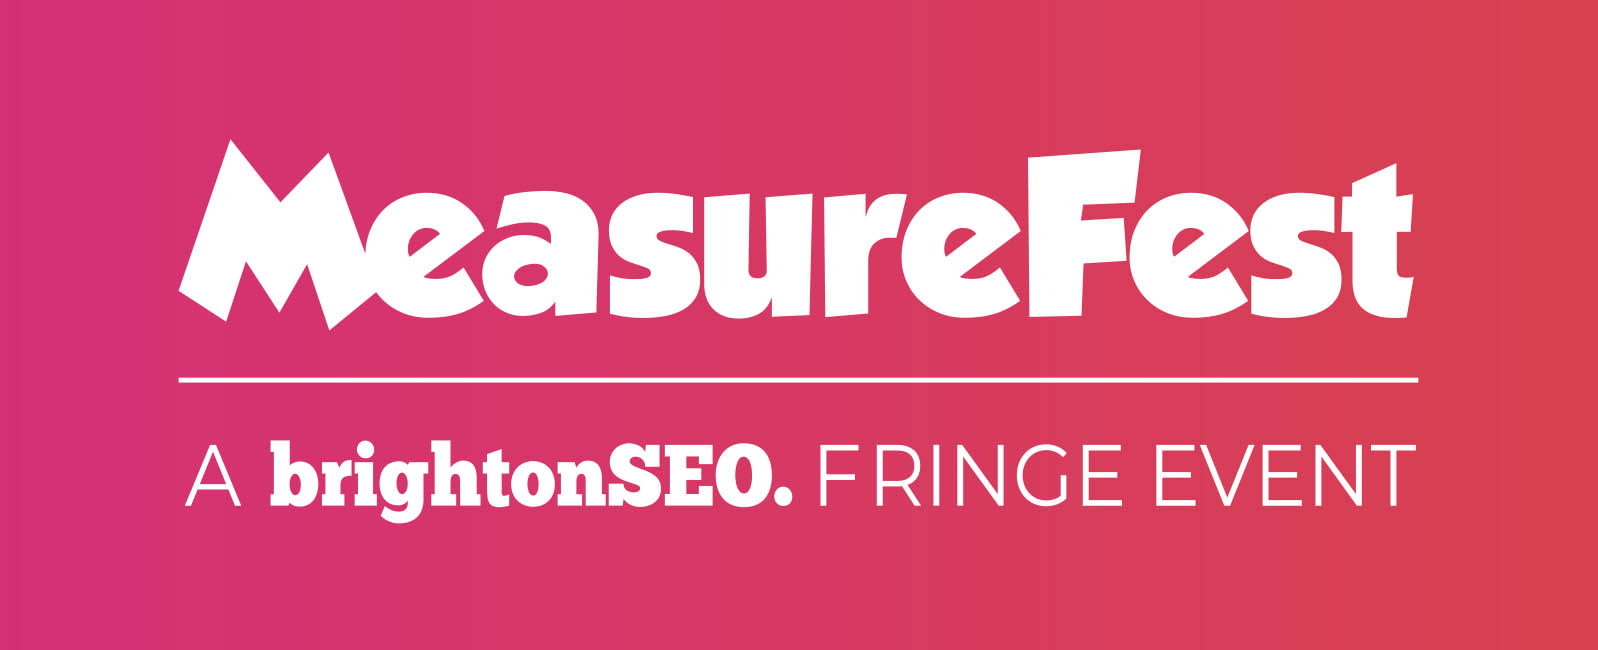 MeasureFest - a brightonSEO fringe event